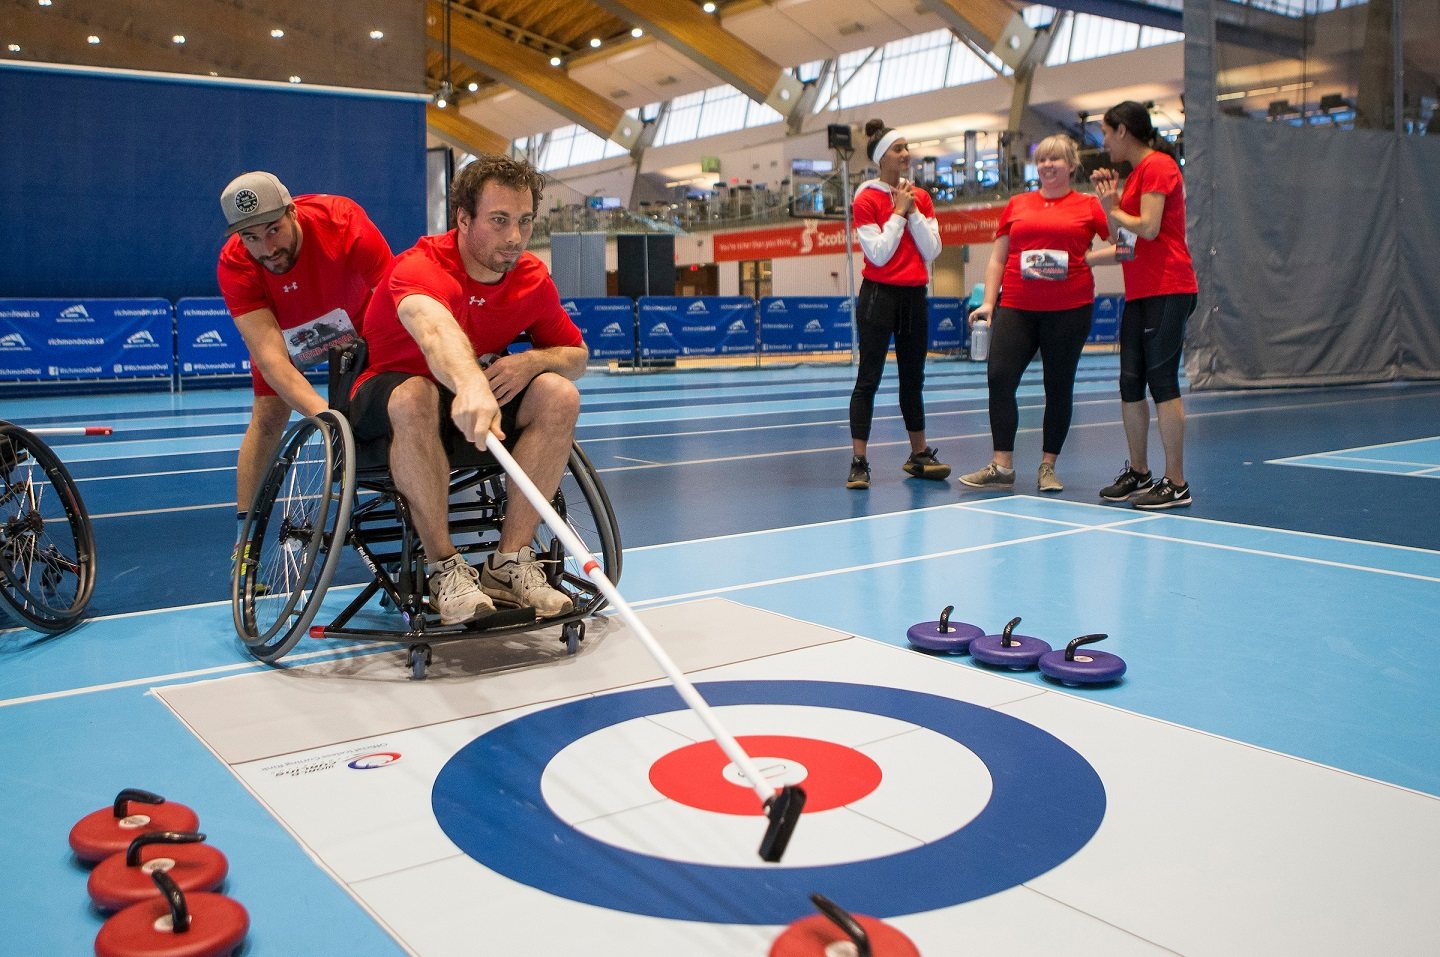 Teams compete in wheelchair curling at ParaTough Cup